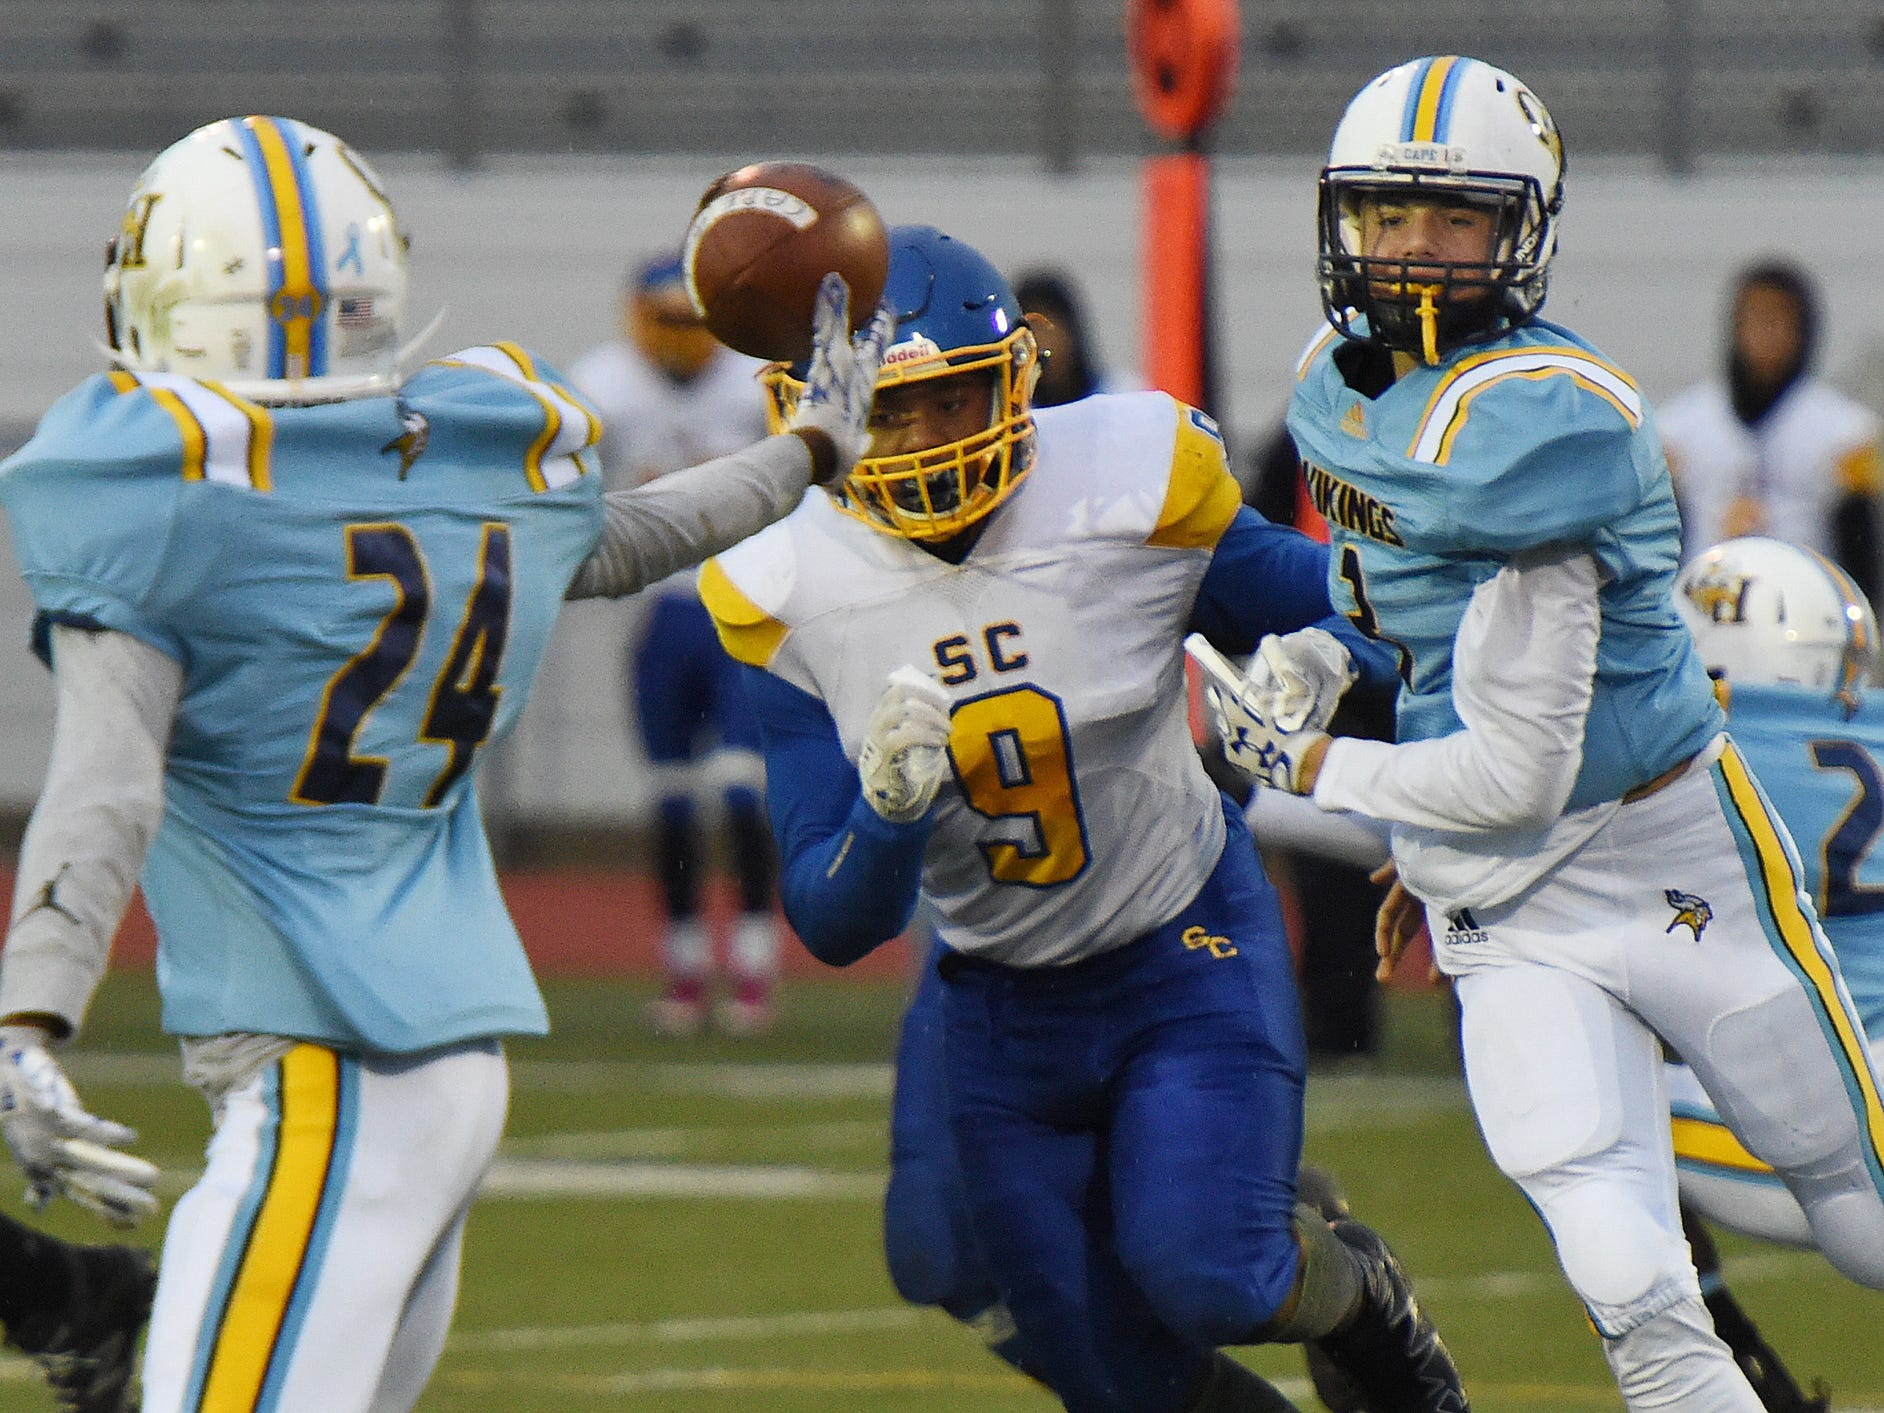 Cape's Samuel Jones, No. 3, tosses the ball to Davonte Johnson during the game Oct. 26, 2018.